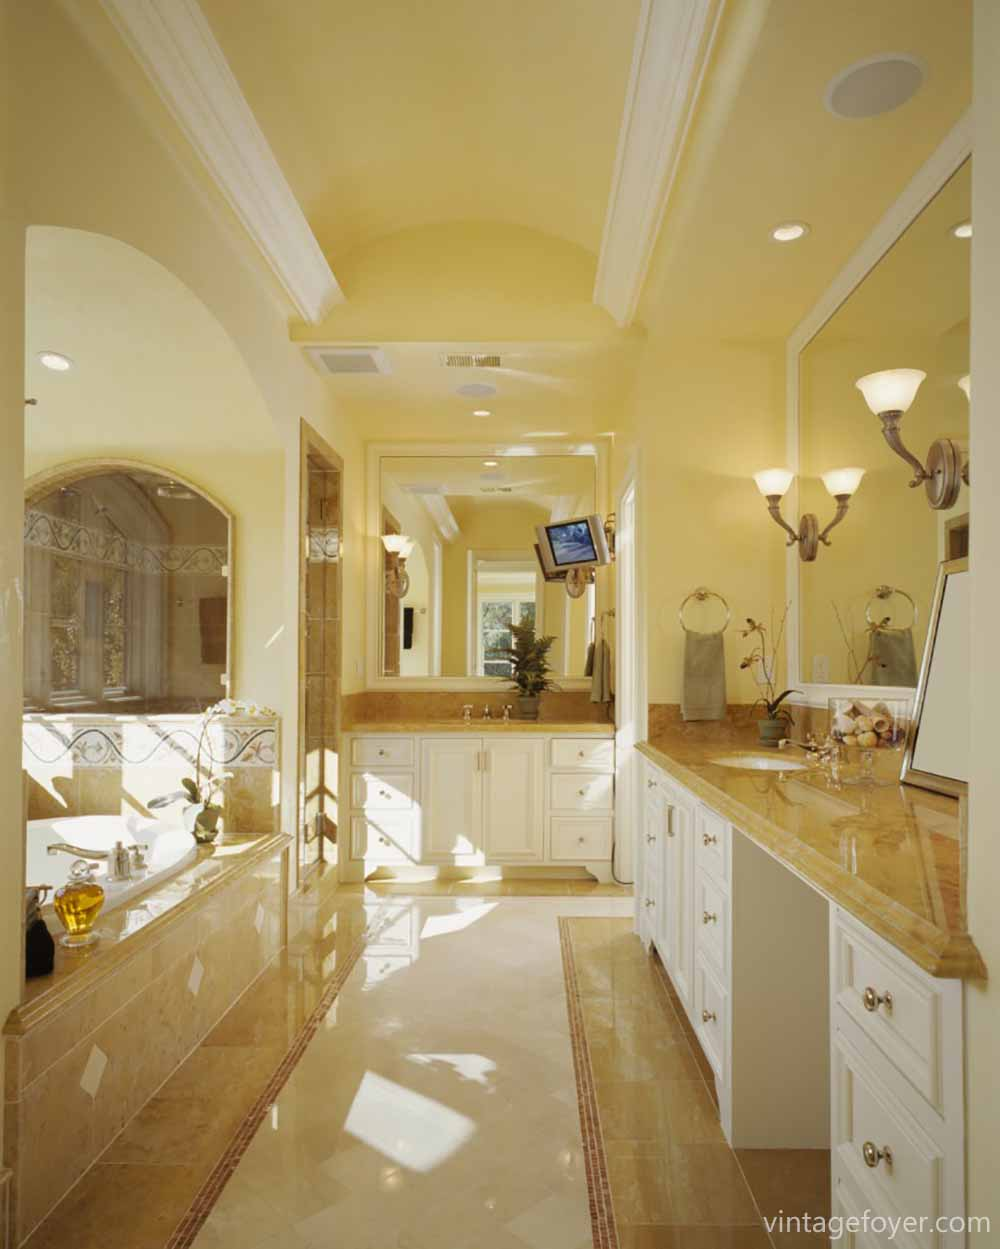 If You Enjoy The Warm Tones Of This Bathroom Try Adding Light Yellow Wall Paint